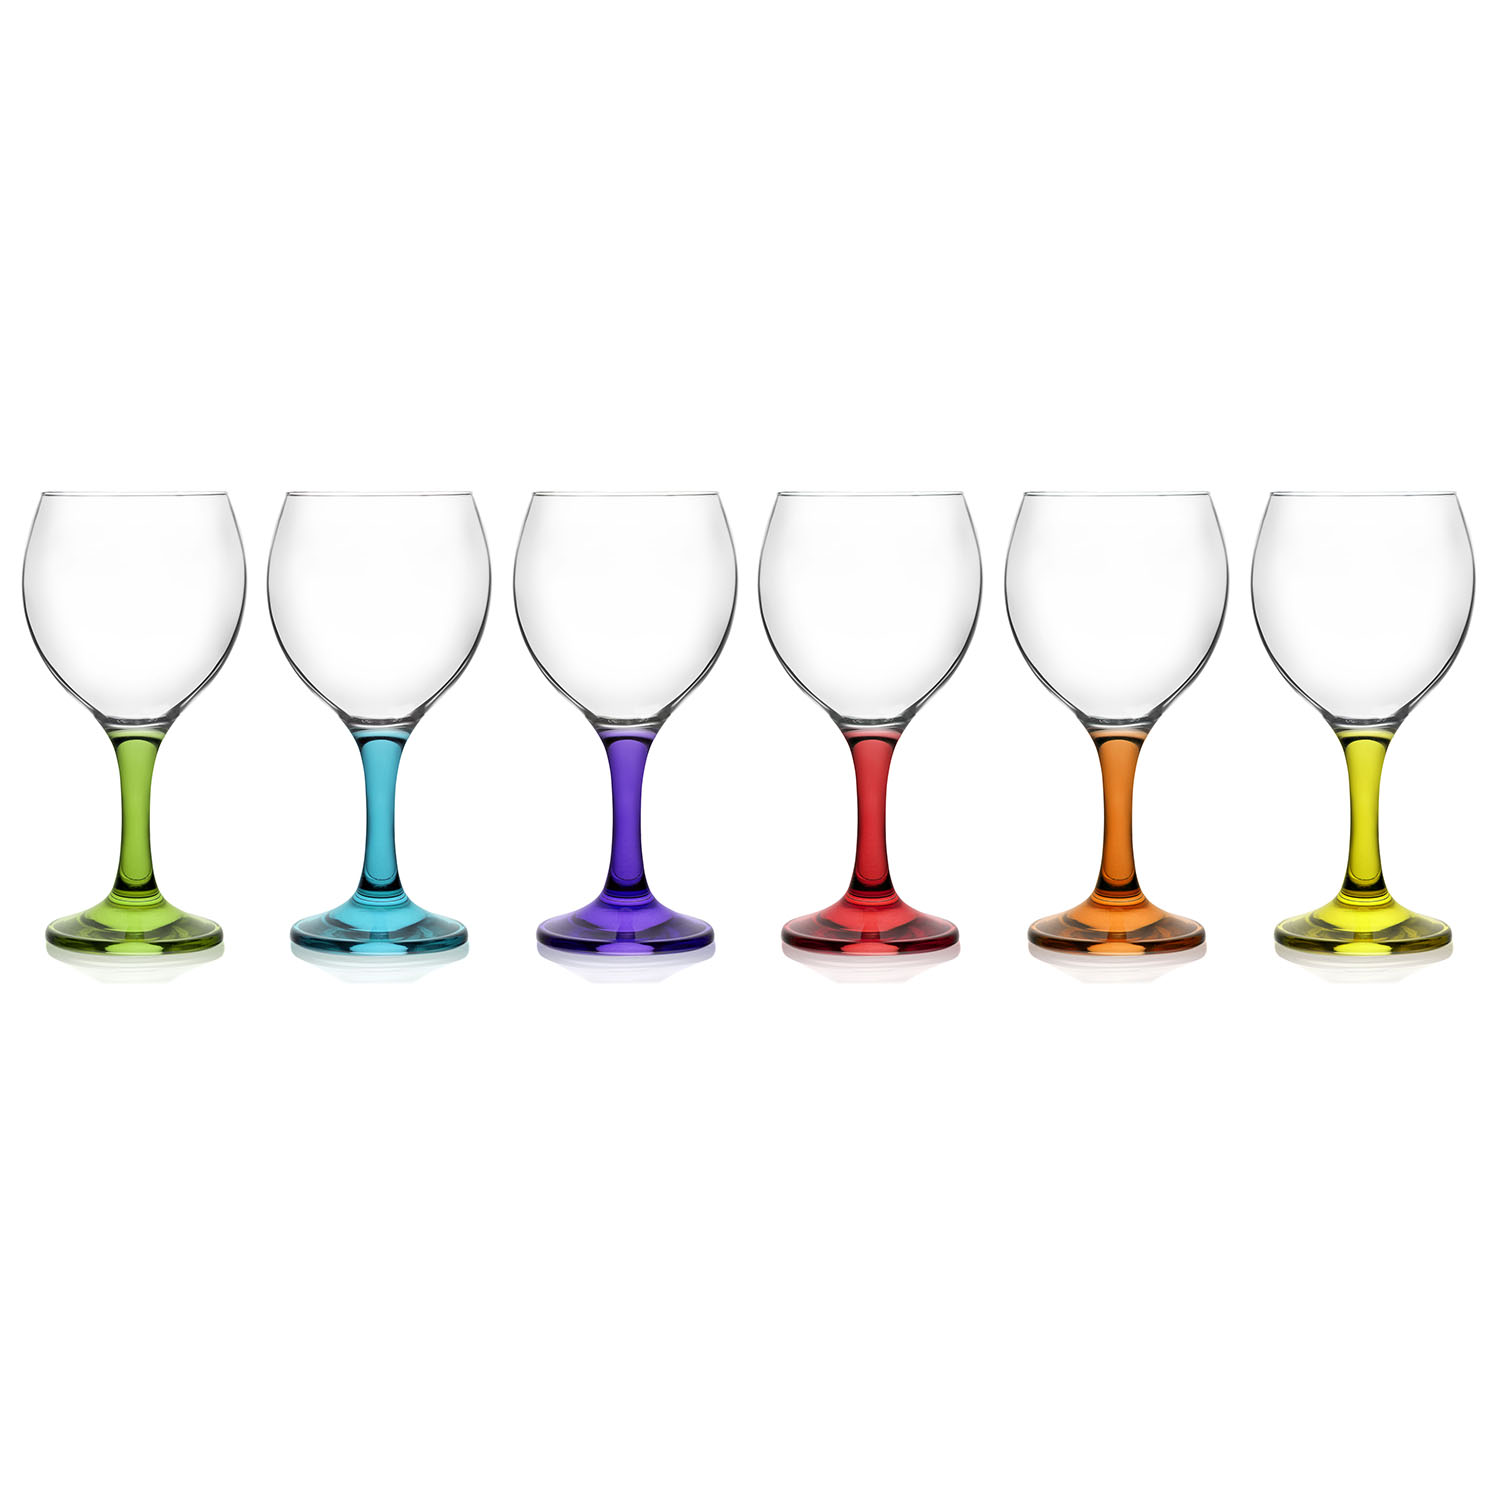 LAV Box of Coral Water/Wine Glasses